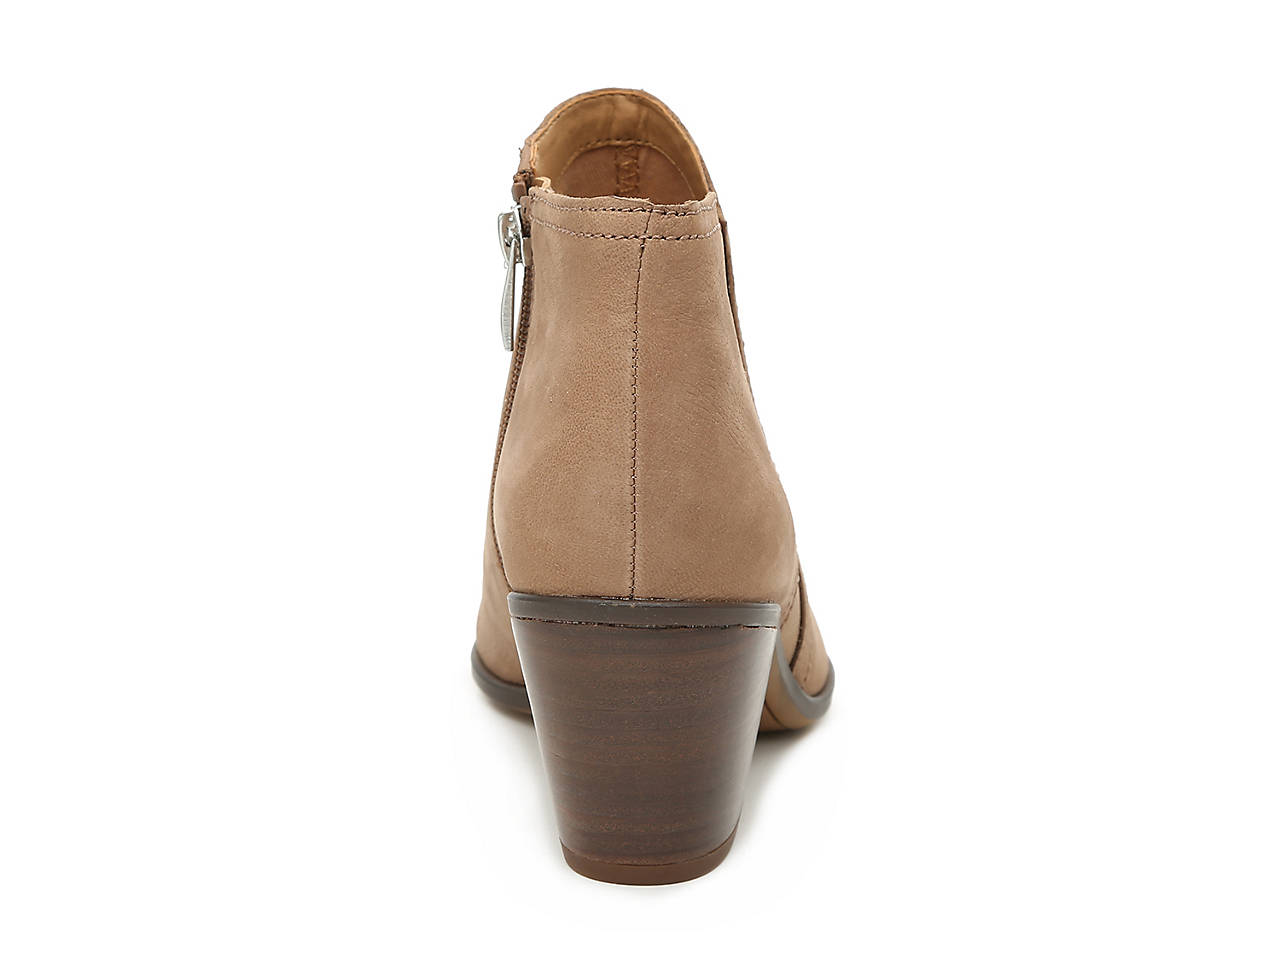 89c59ec63 Home · Women's Shoes · Boots; Odeon Bootie. previous